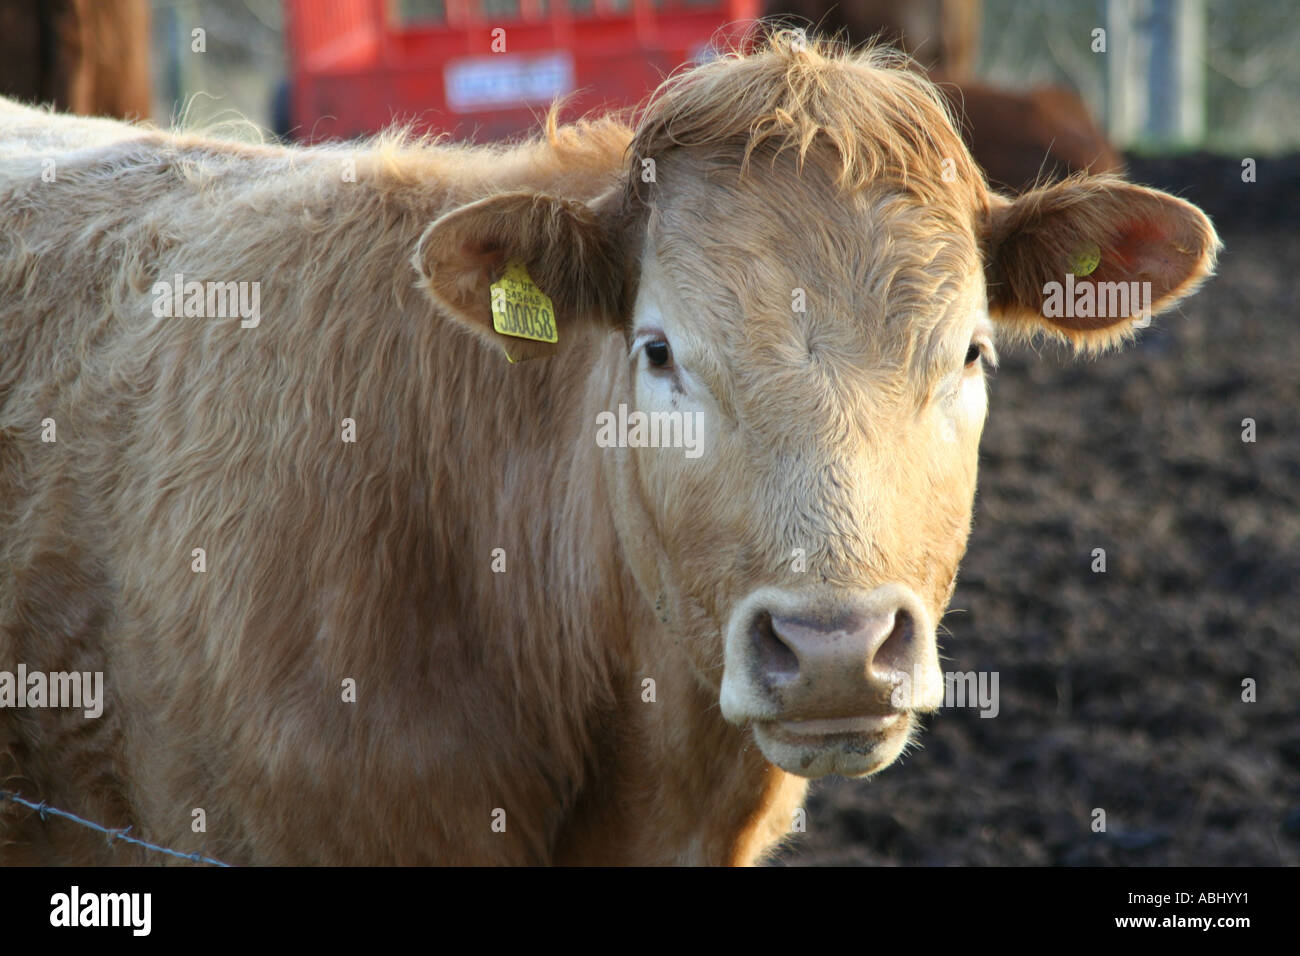 Jersey cow, Chatelherault Country Park, Hamilton, Scotland, UK. - Stock Image